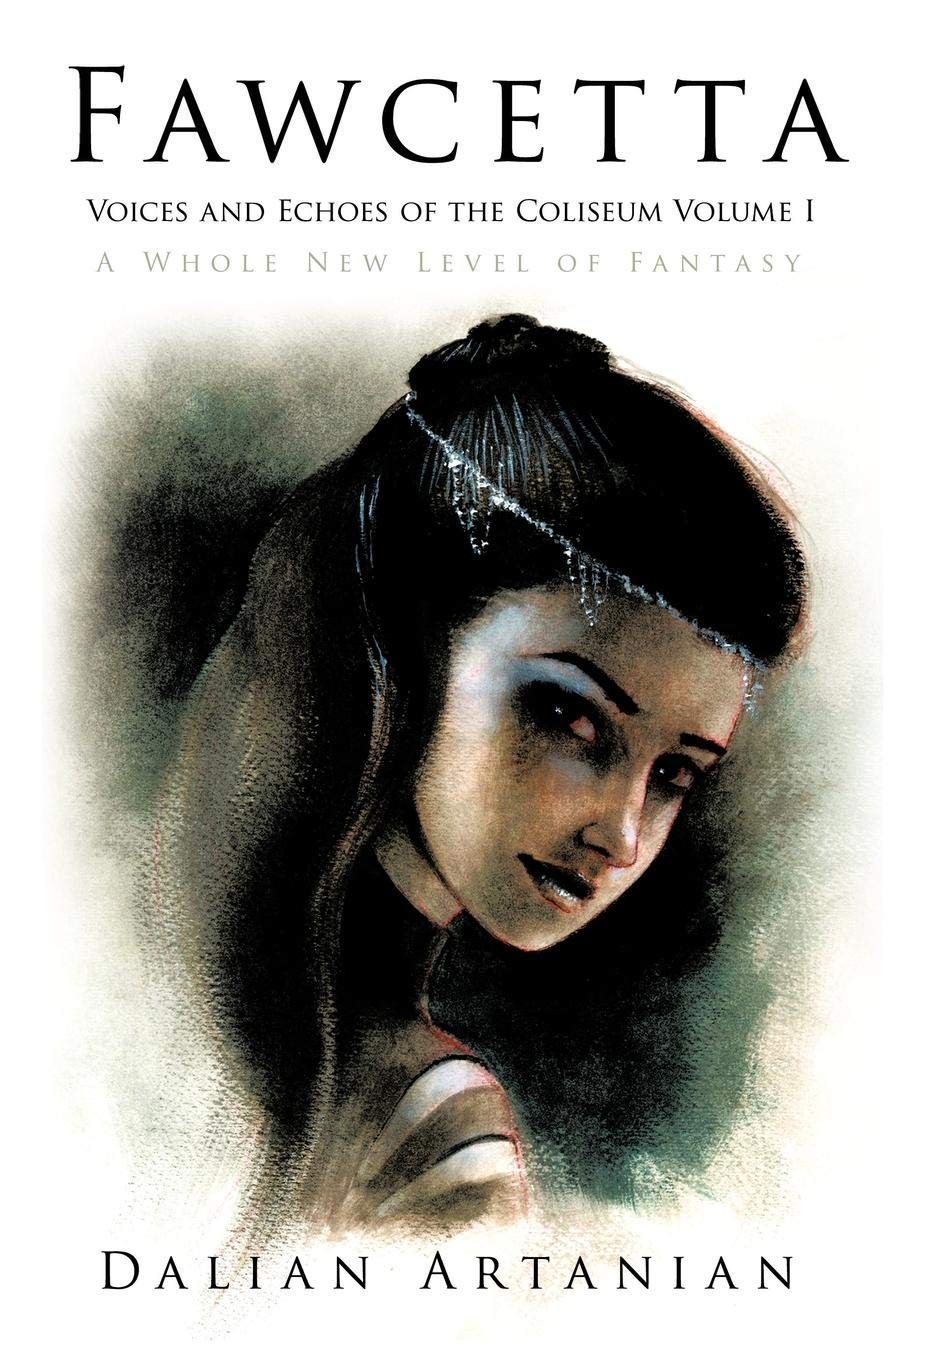 Amazon com: Fawcetta: Voices and Echoes of the Coliseum